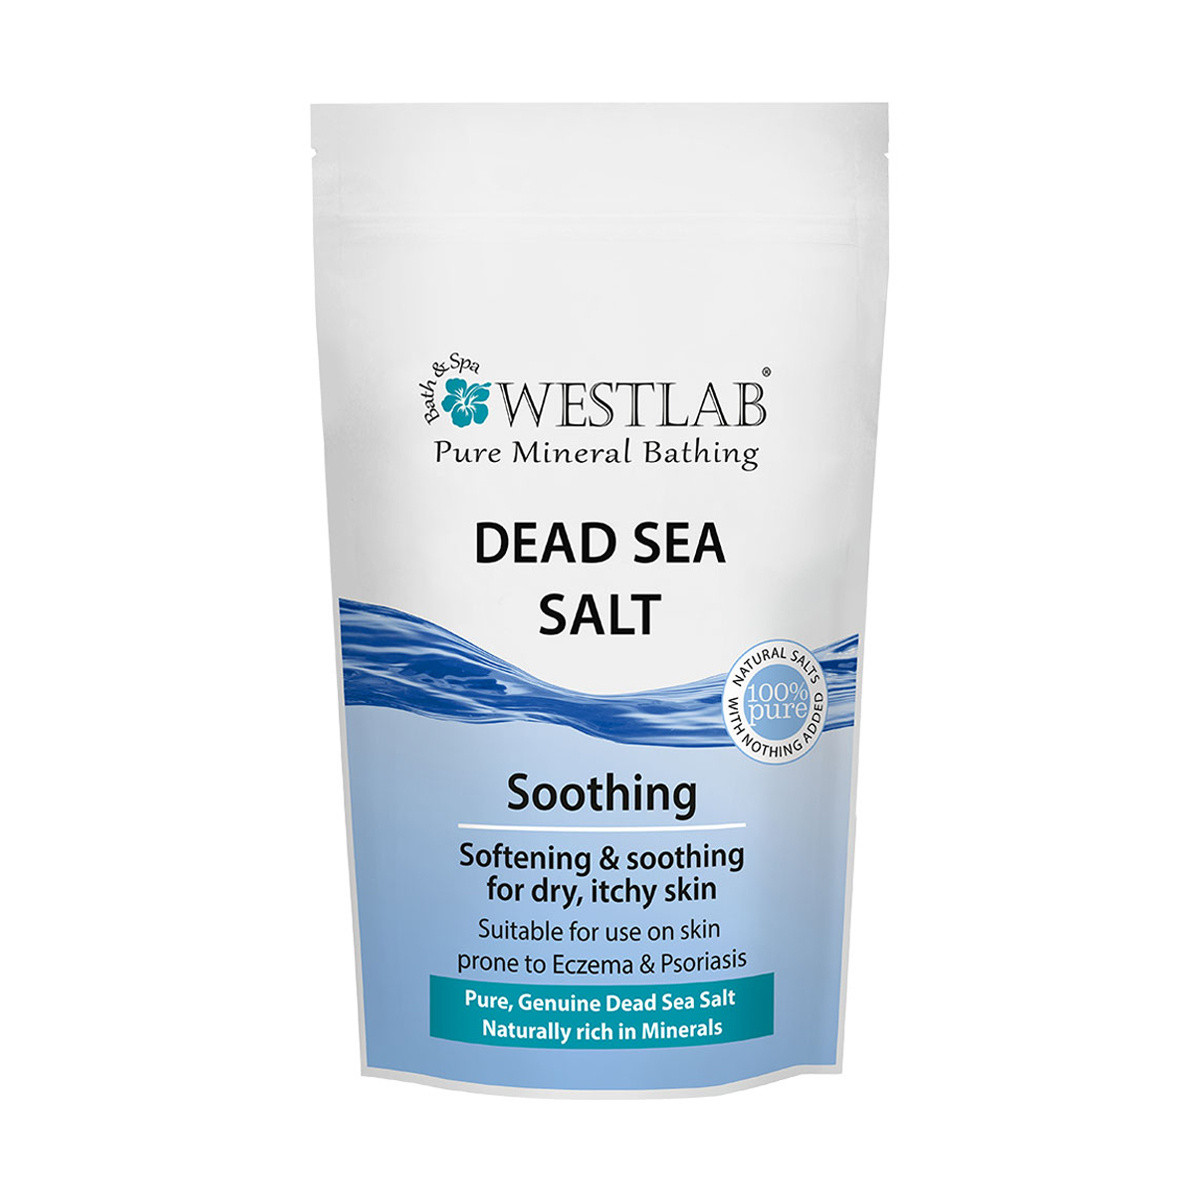 Westlab Dead Sea Salt